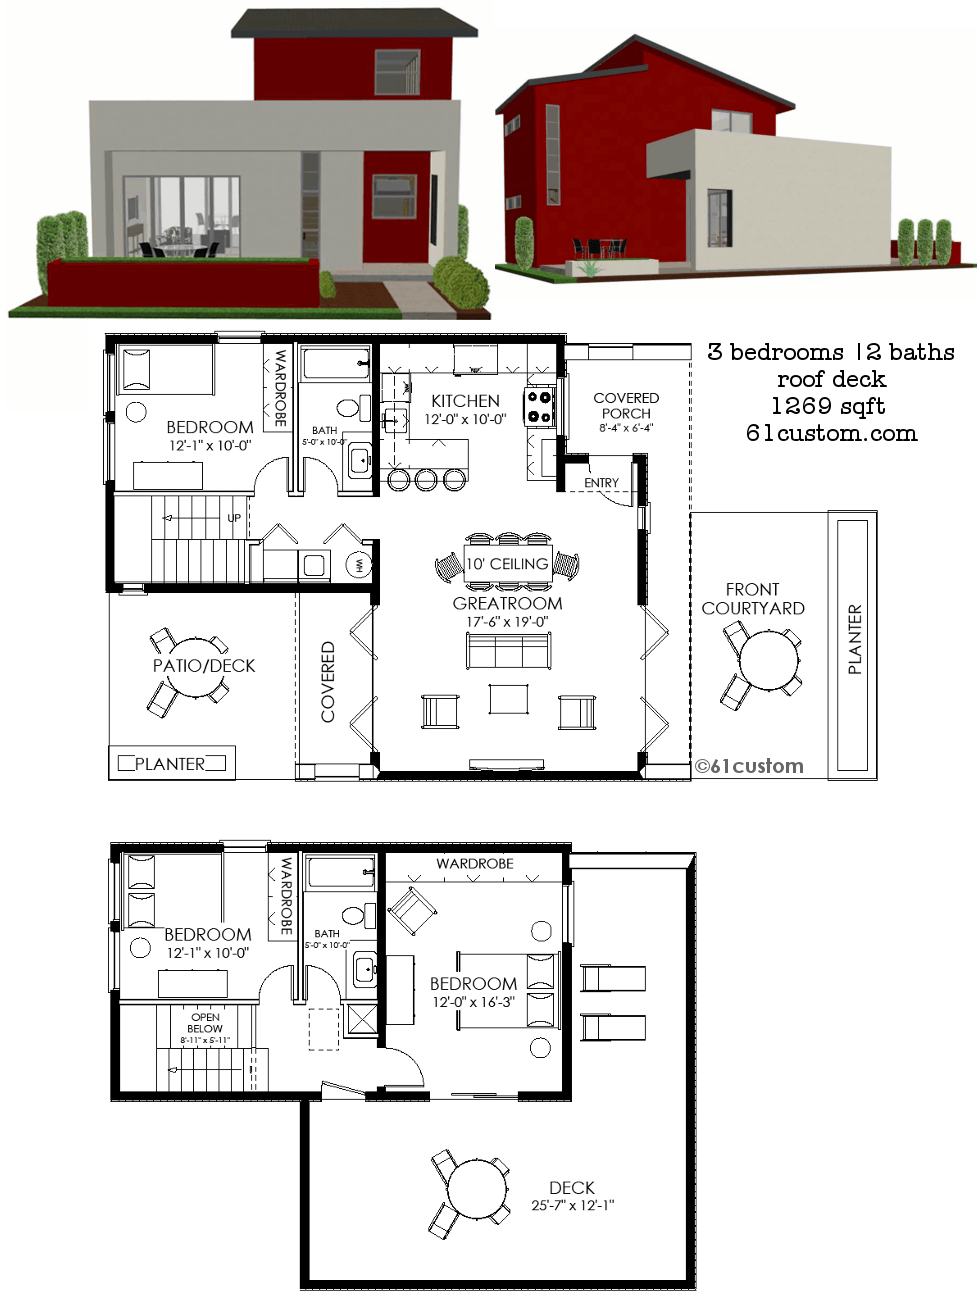 Contemporary Small House Plan 61custom Contemporary Modern House Plans